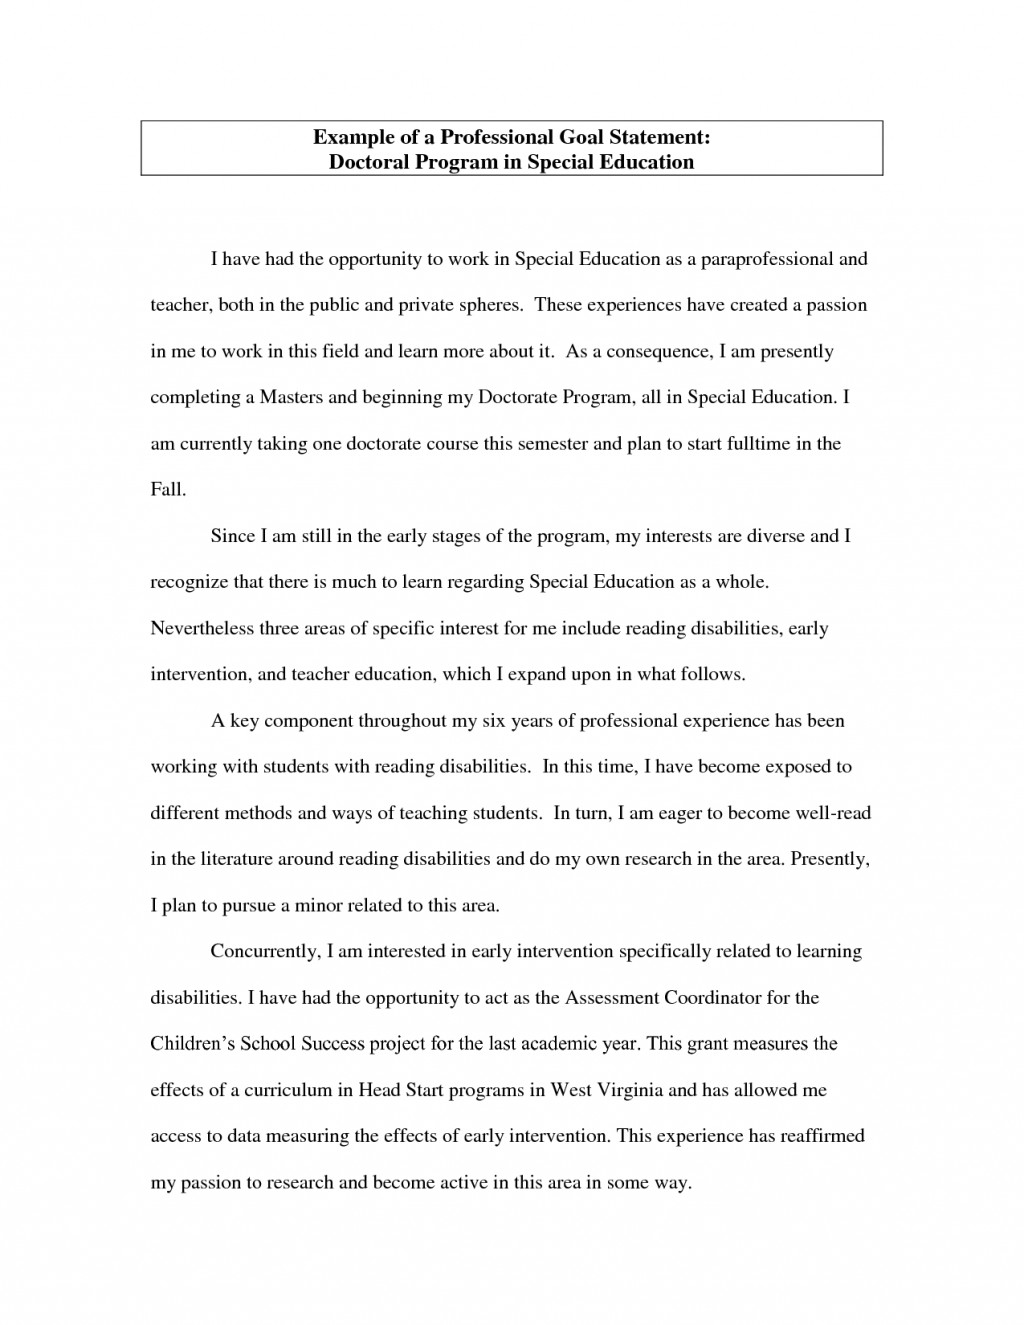 006 Academic Essay Example Career Goal Statement Fantastic 1500 Words 500 Large